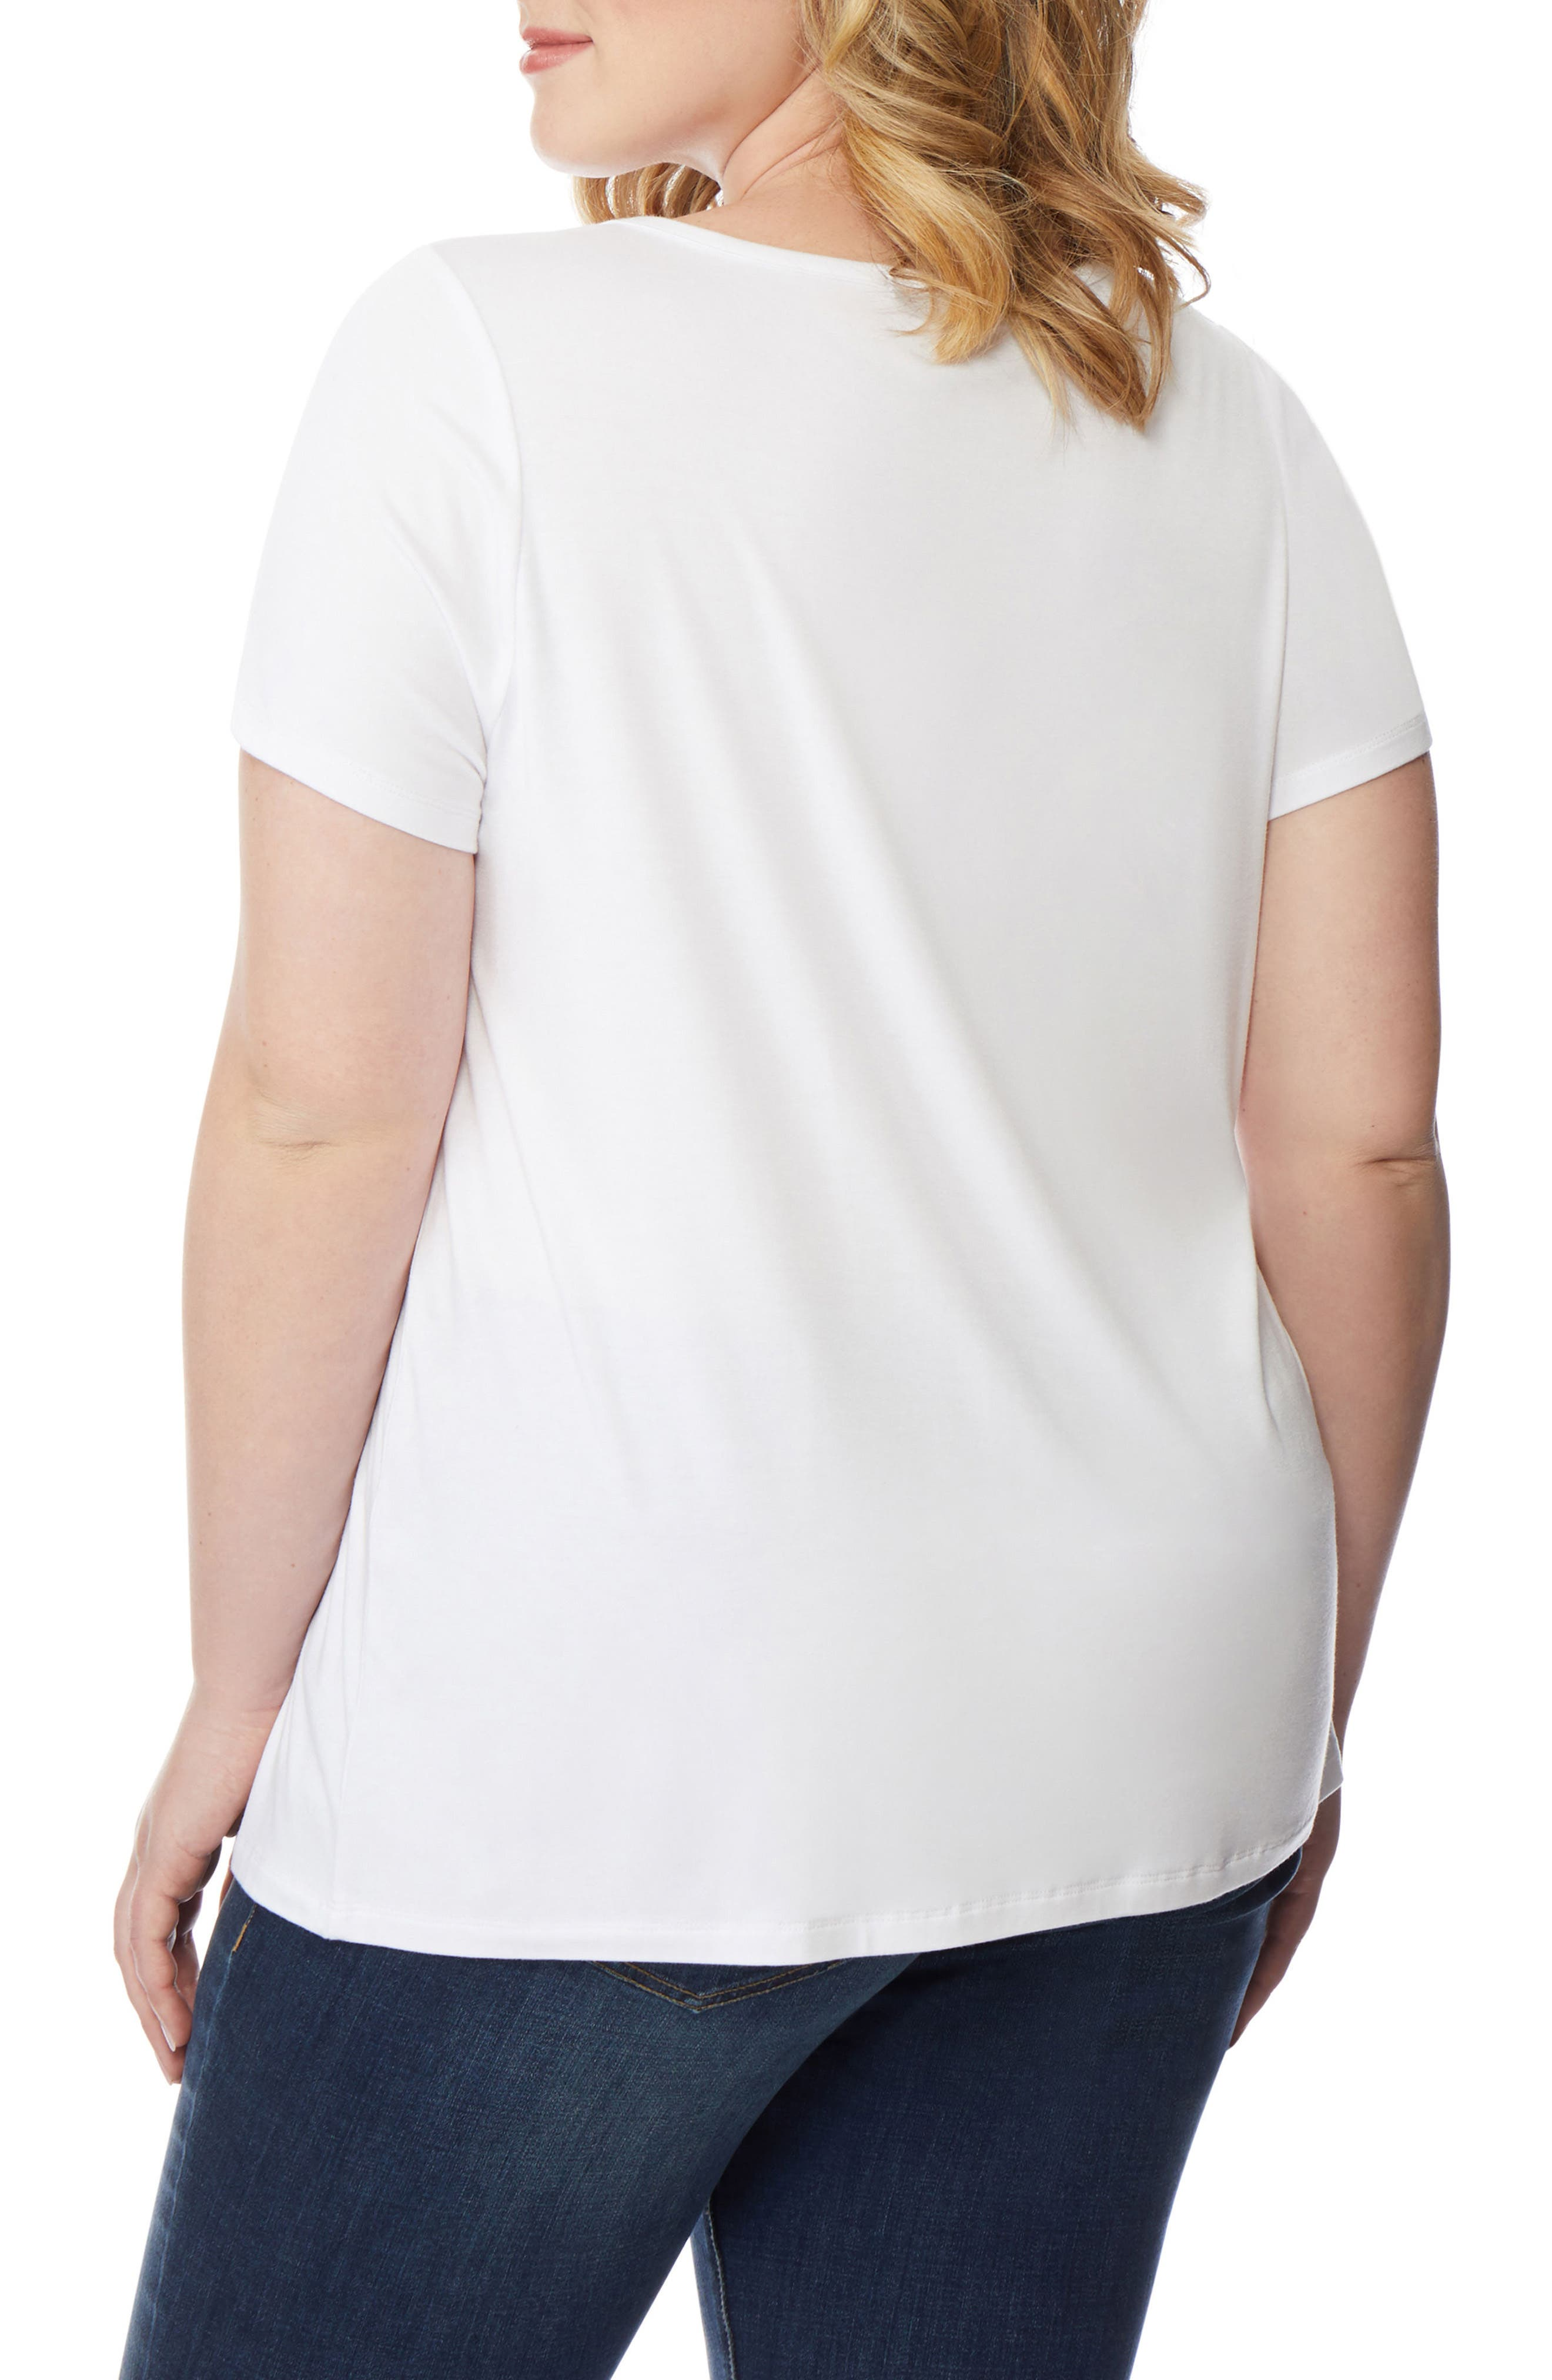 REBEL WILSON X ANGELS,                             Twist Neck Tee,                             Alternate thumbnail 2, color,                             100